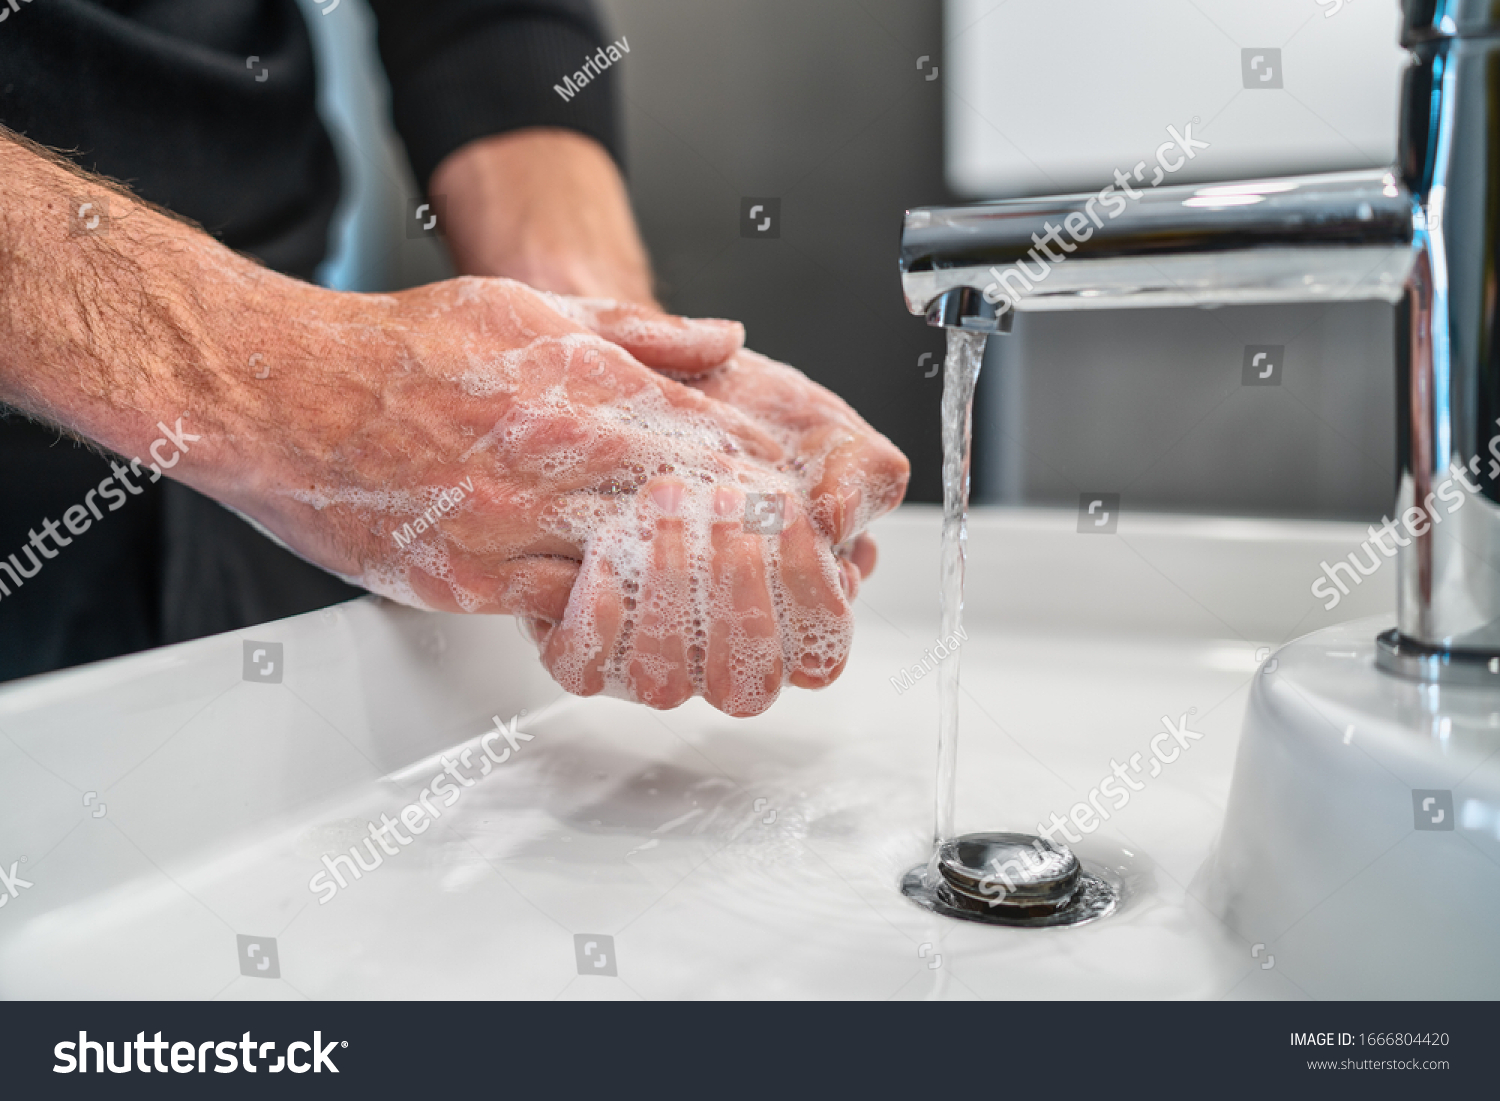 Corona virus travel prevention man showing hand hygiene washing hands with soap in hot water for coronavirus germs spreading protection. #1666804420